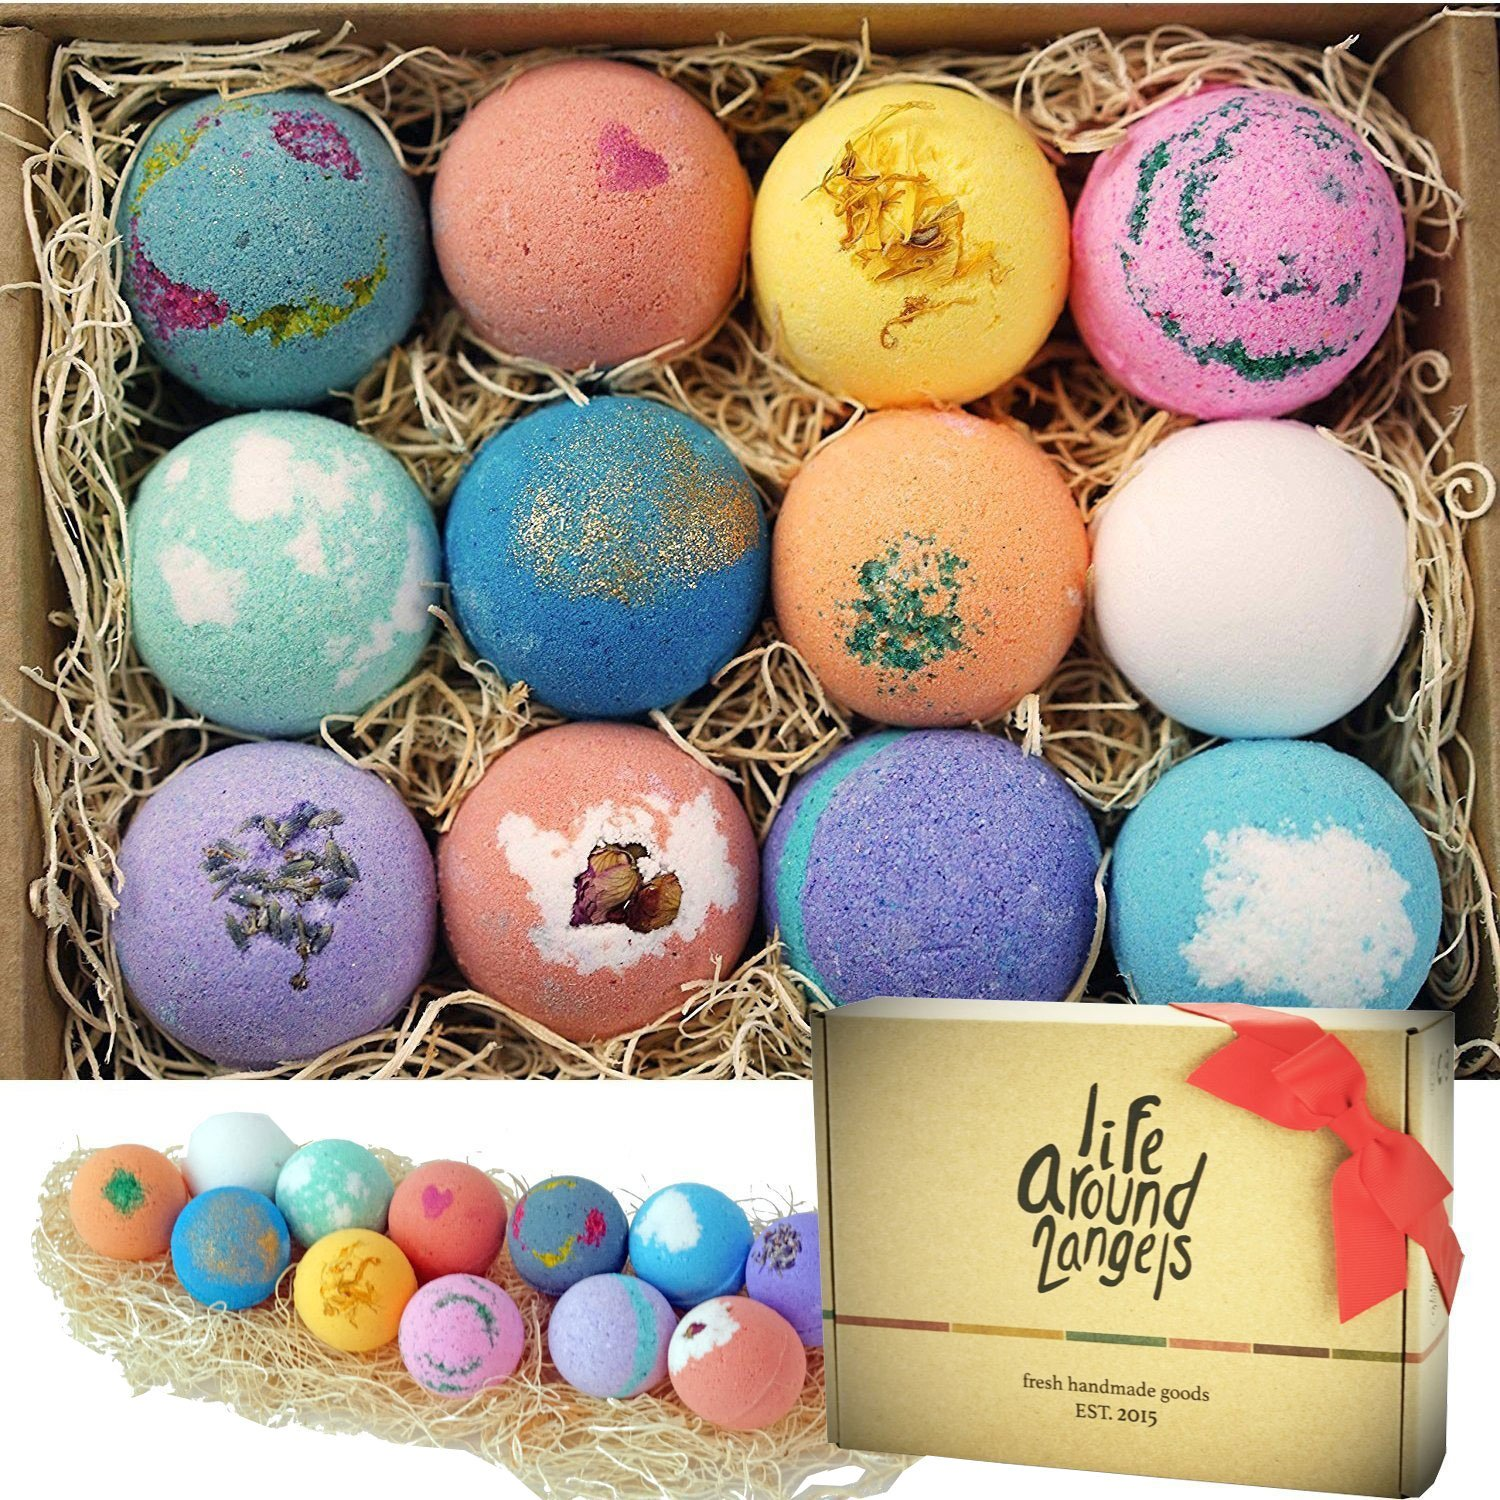 LifeAround2Angels Bath Bombs Gift Set 12 USA made Fizzies, Shea & Coco Butter Dry Skin Moisturize, Perfect for Bubble & Spa Bath ABB12